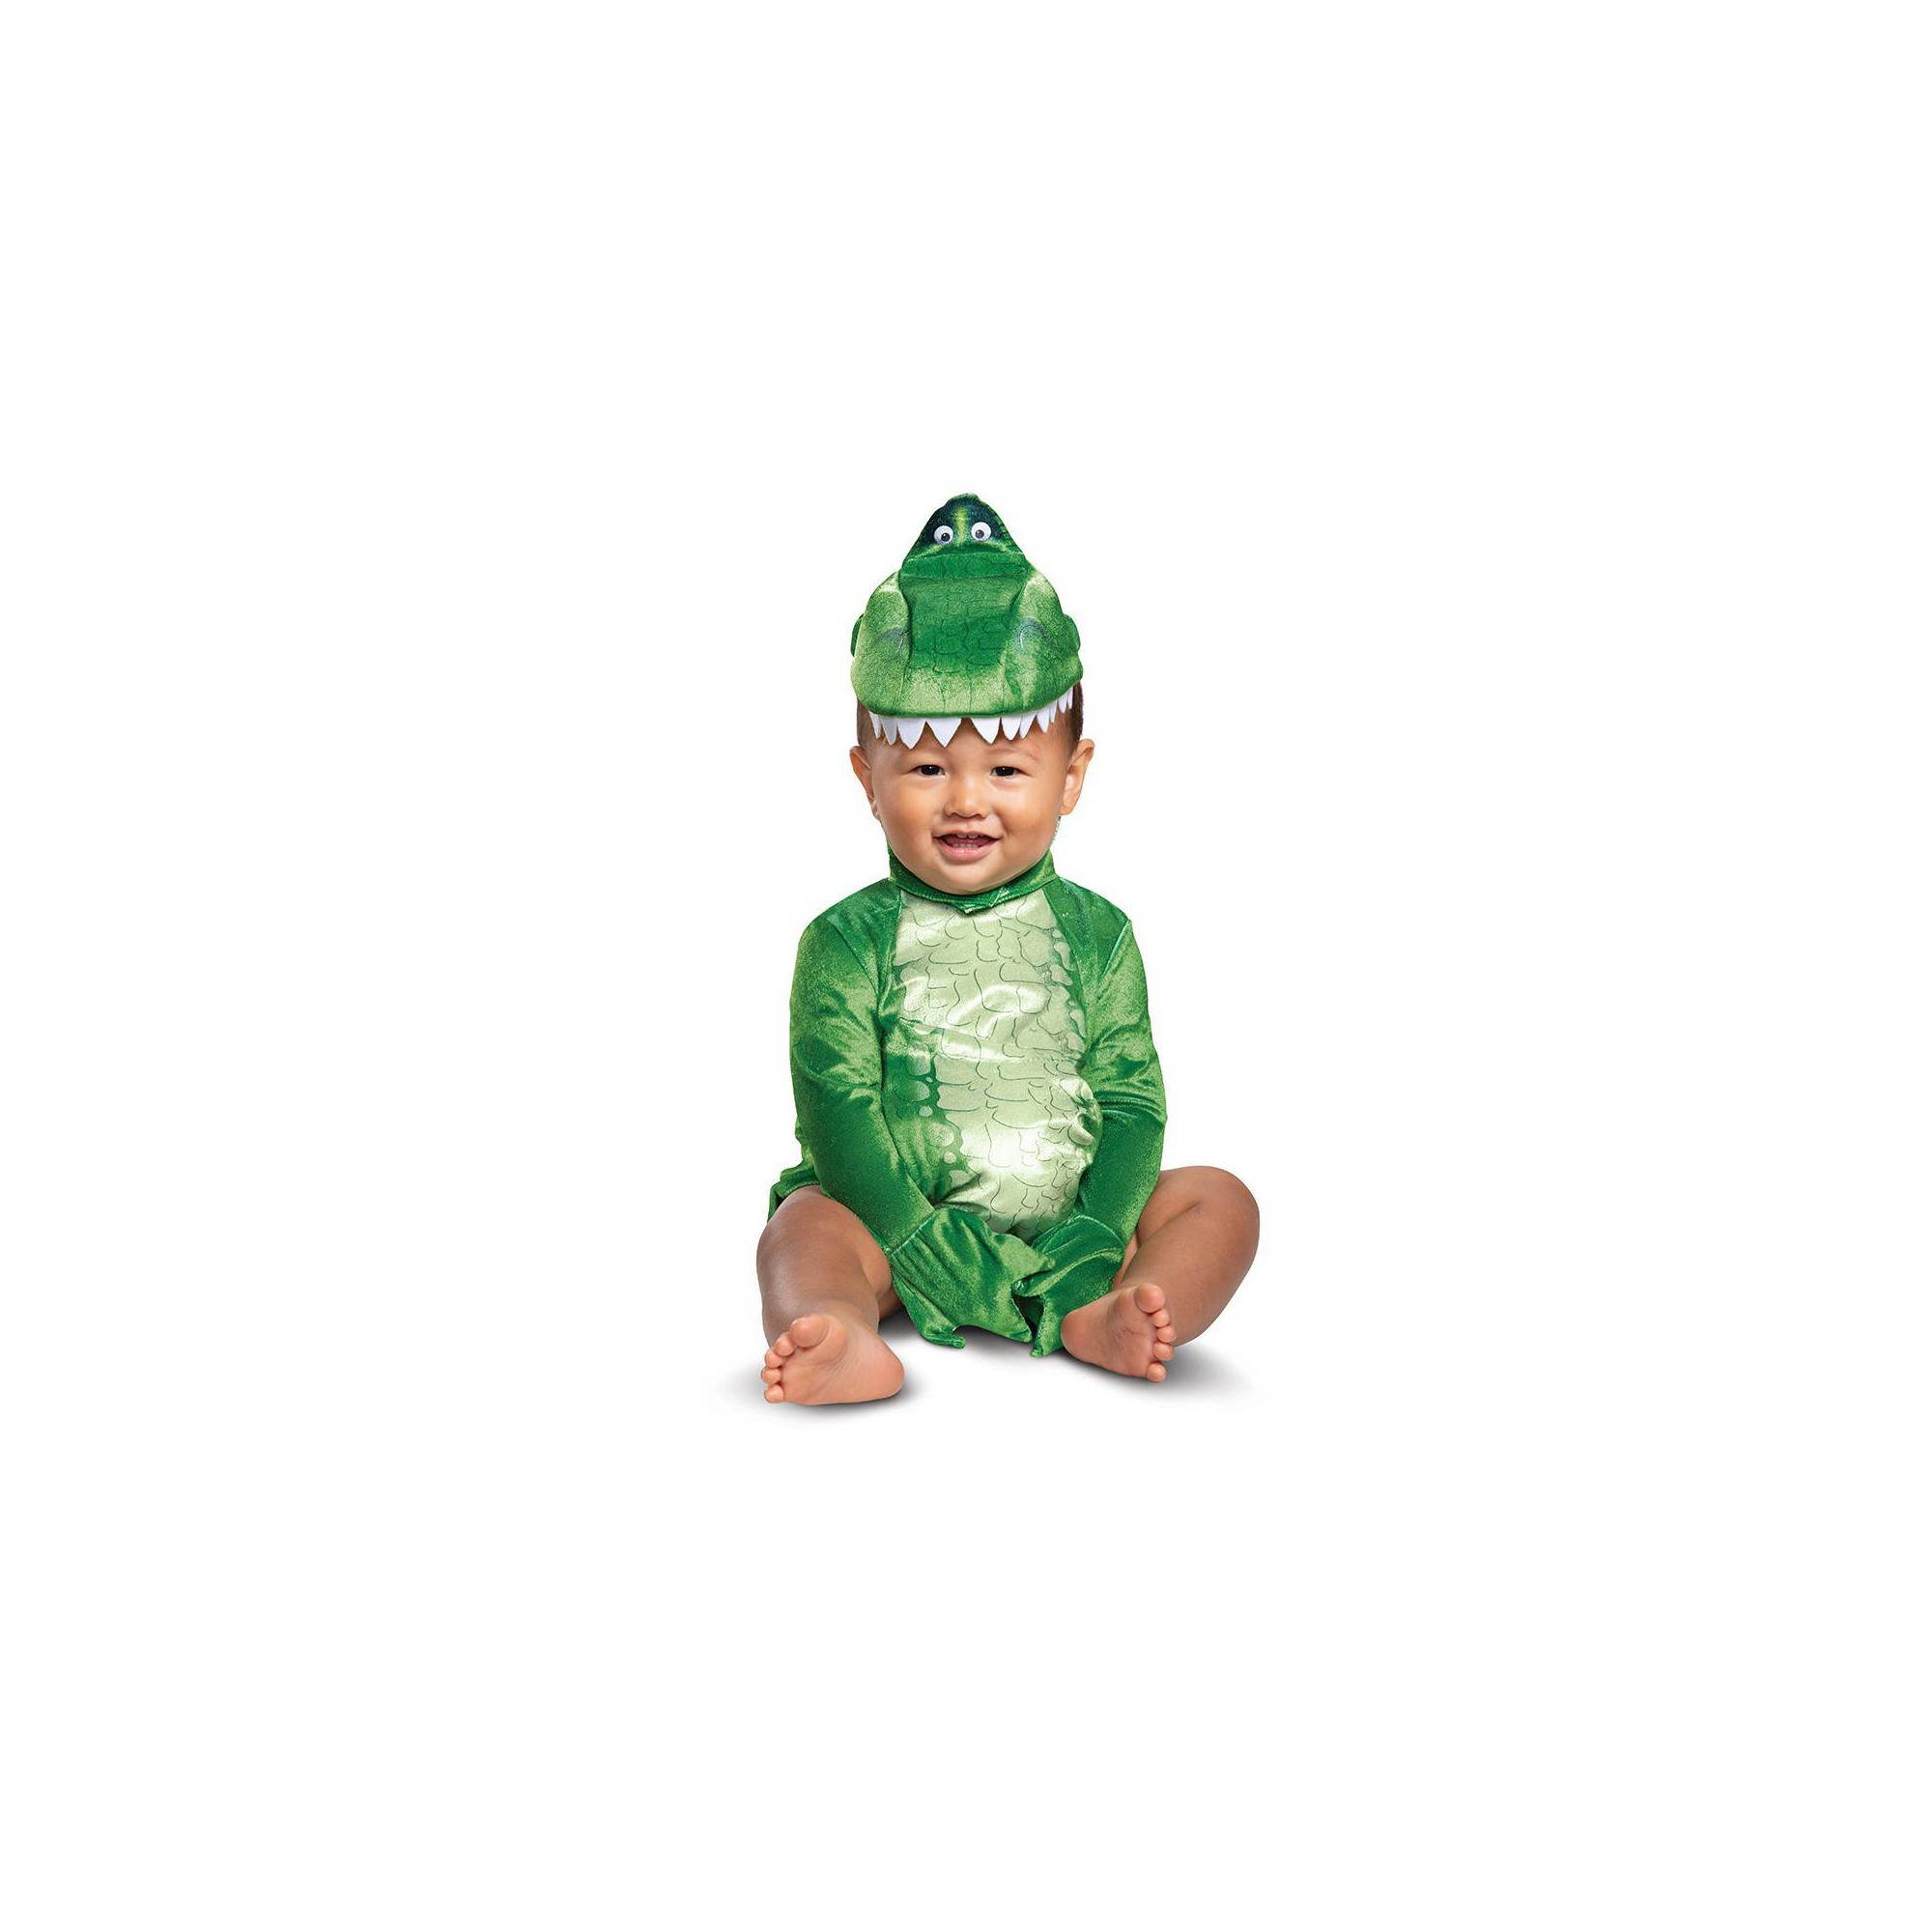 Baby Toy Story Rex Halloween Costume 12-18M, Infant Boy's, Multicolored